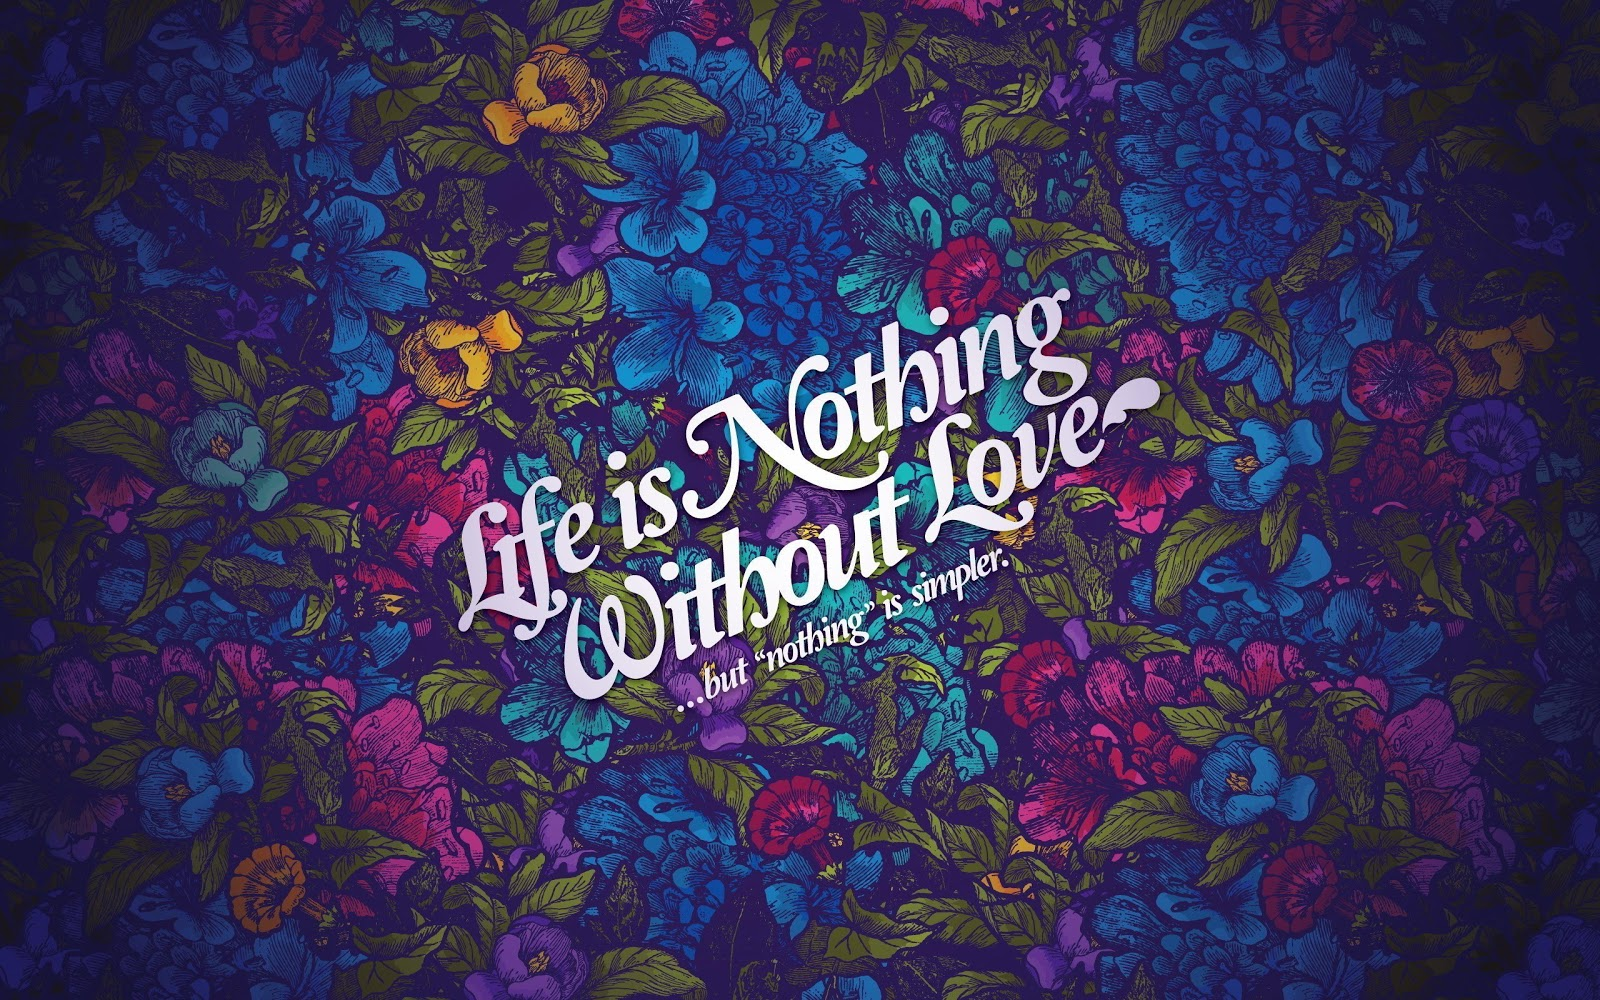 HD Wallpaper Download: Love HD Wallpapers - Life Nothing Without Love